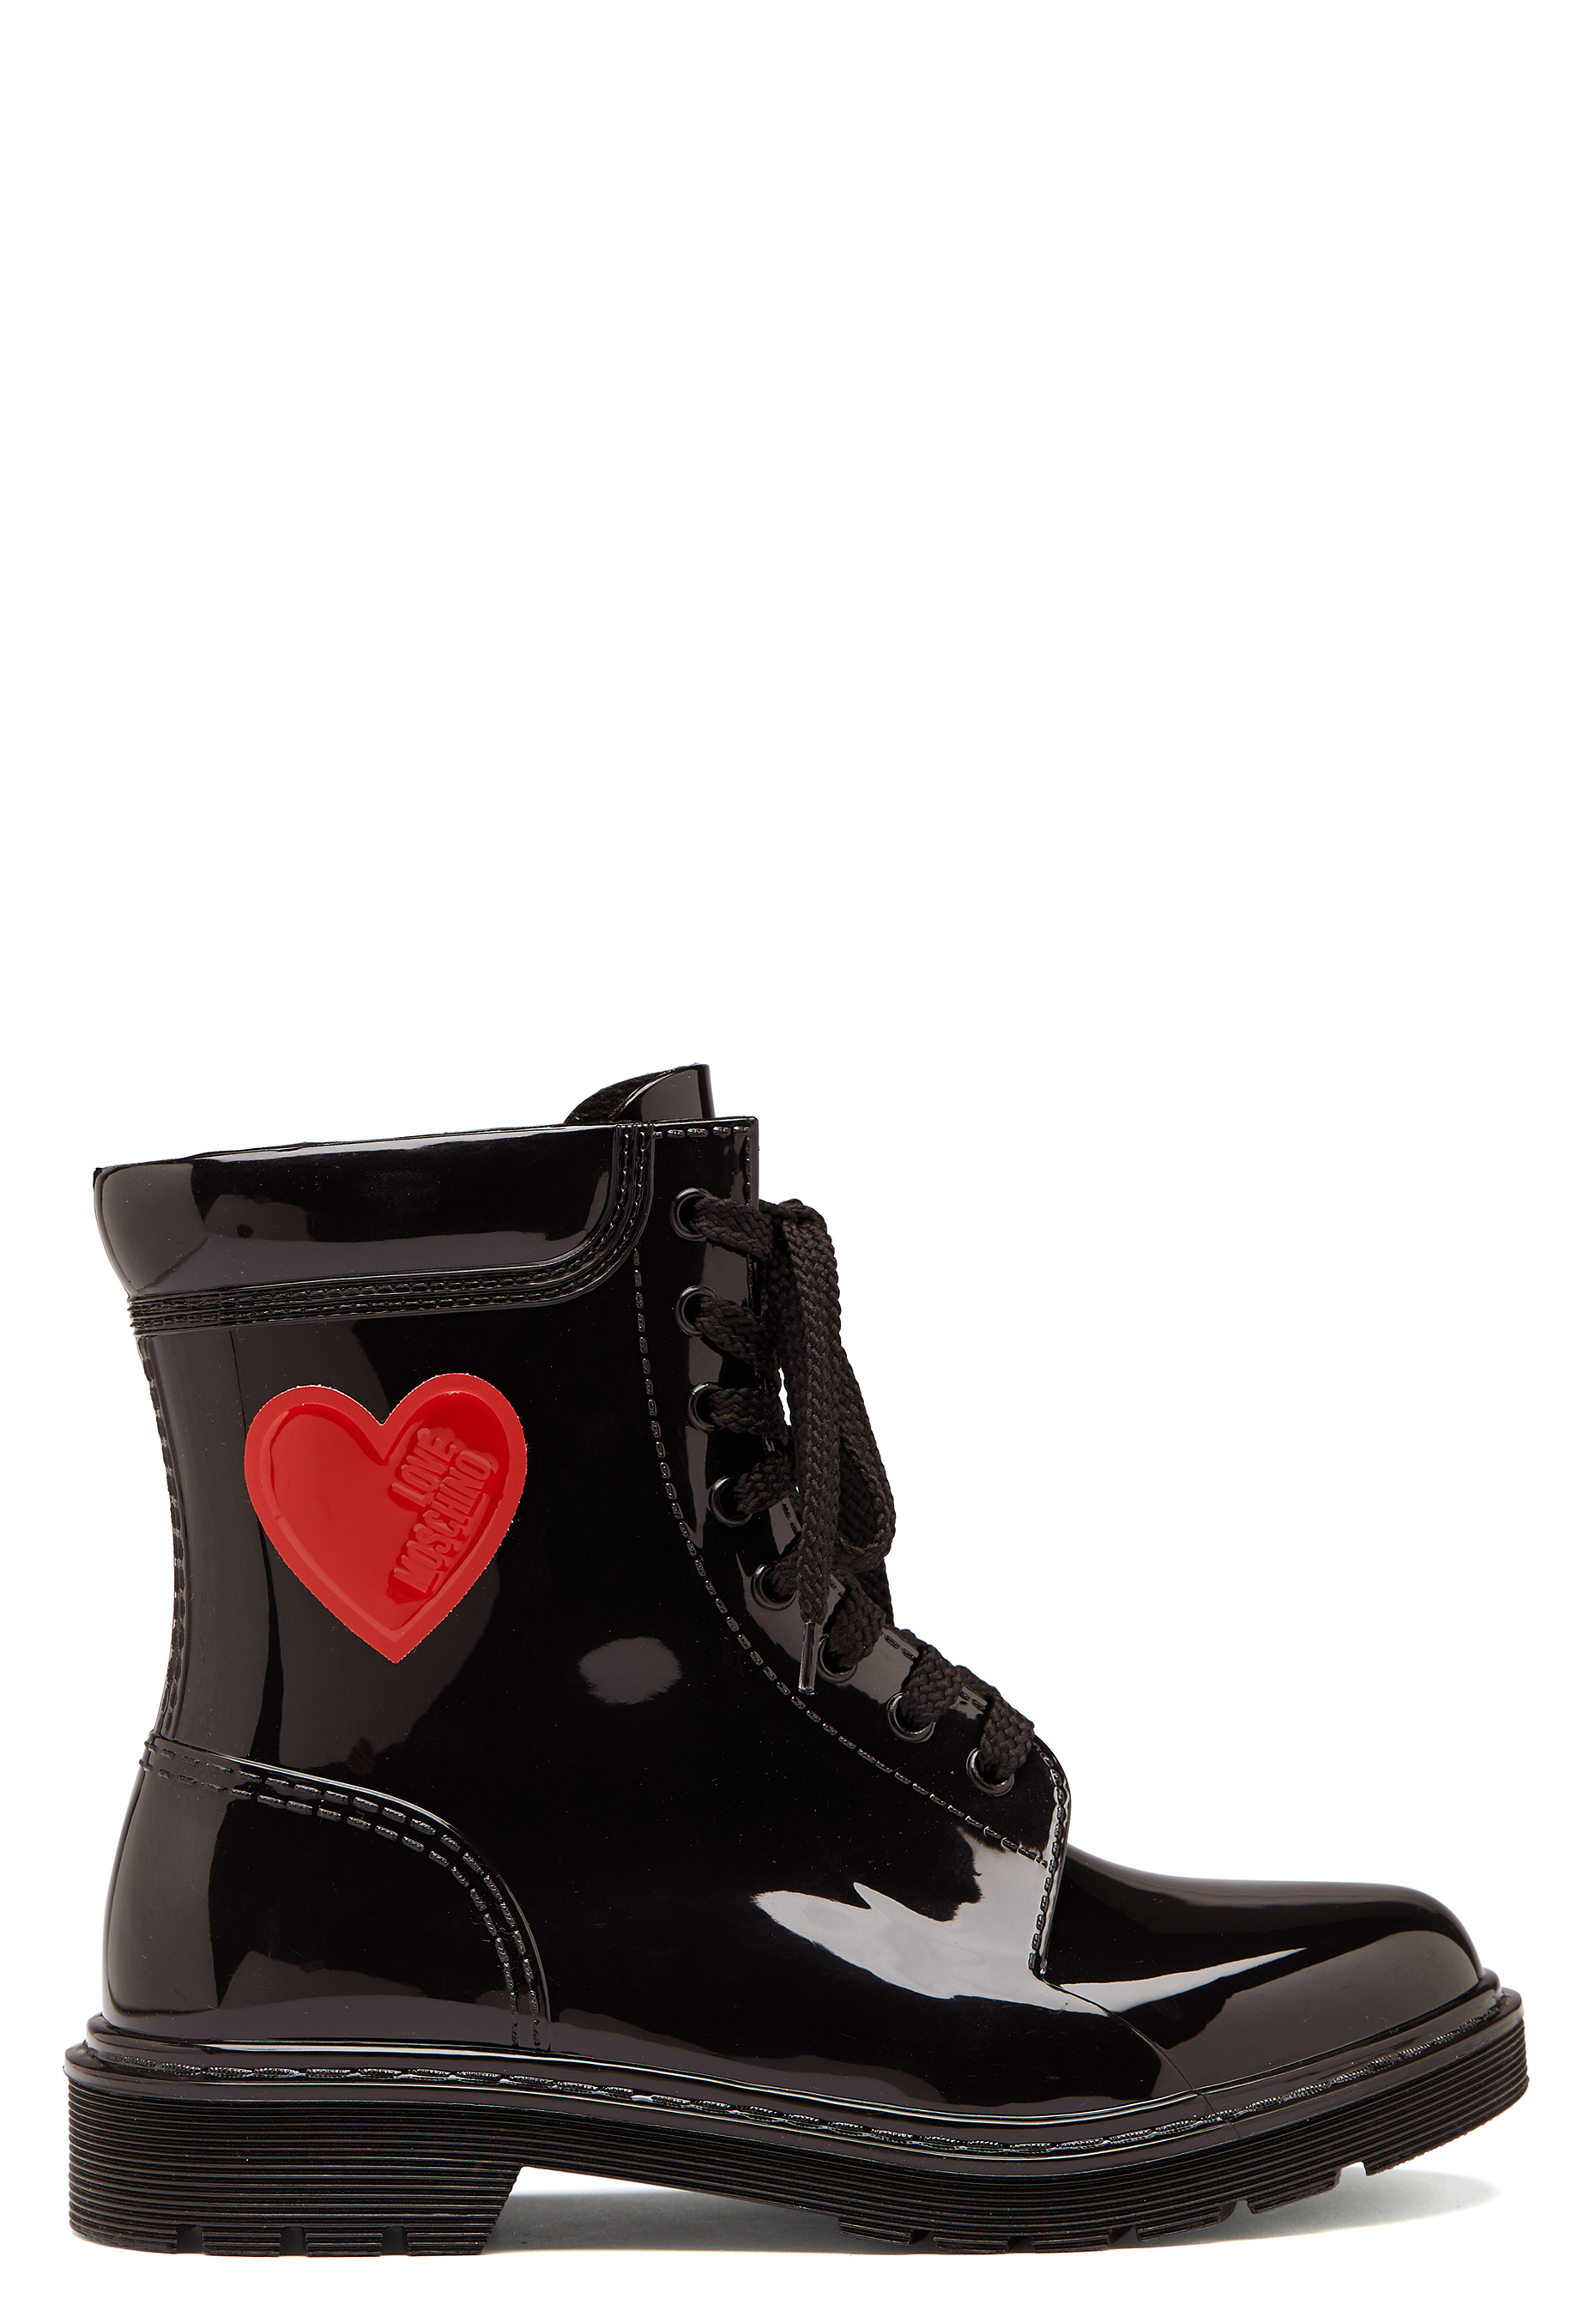 Love Moschino Moschino Rain Boot Black Bubbleroom